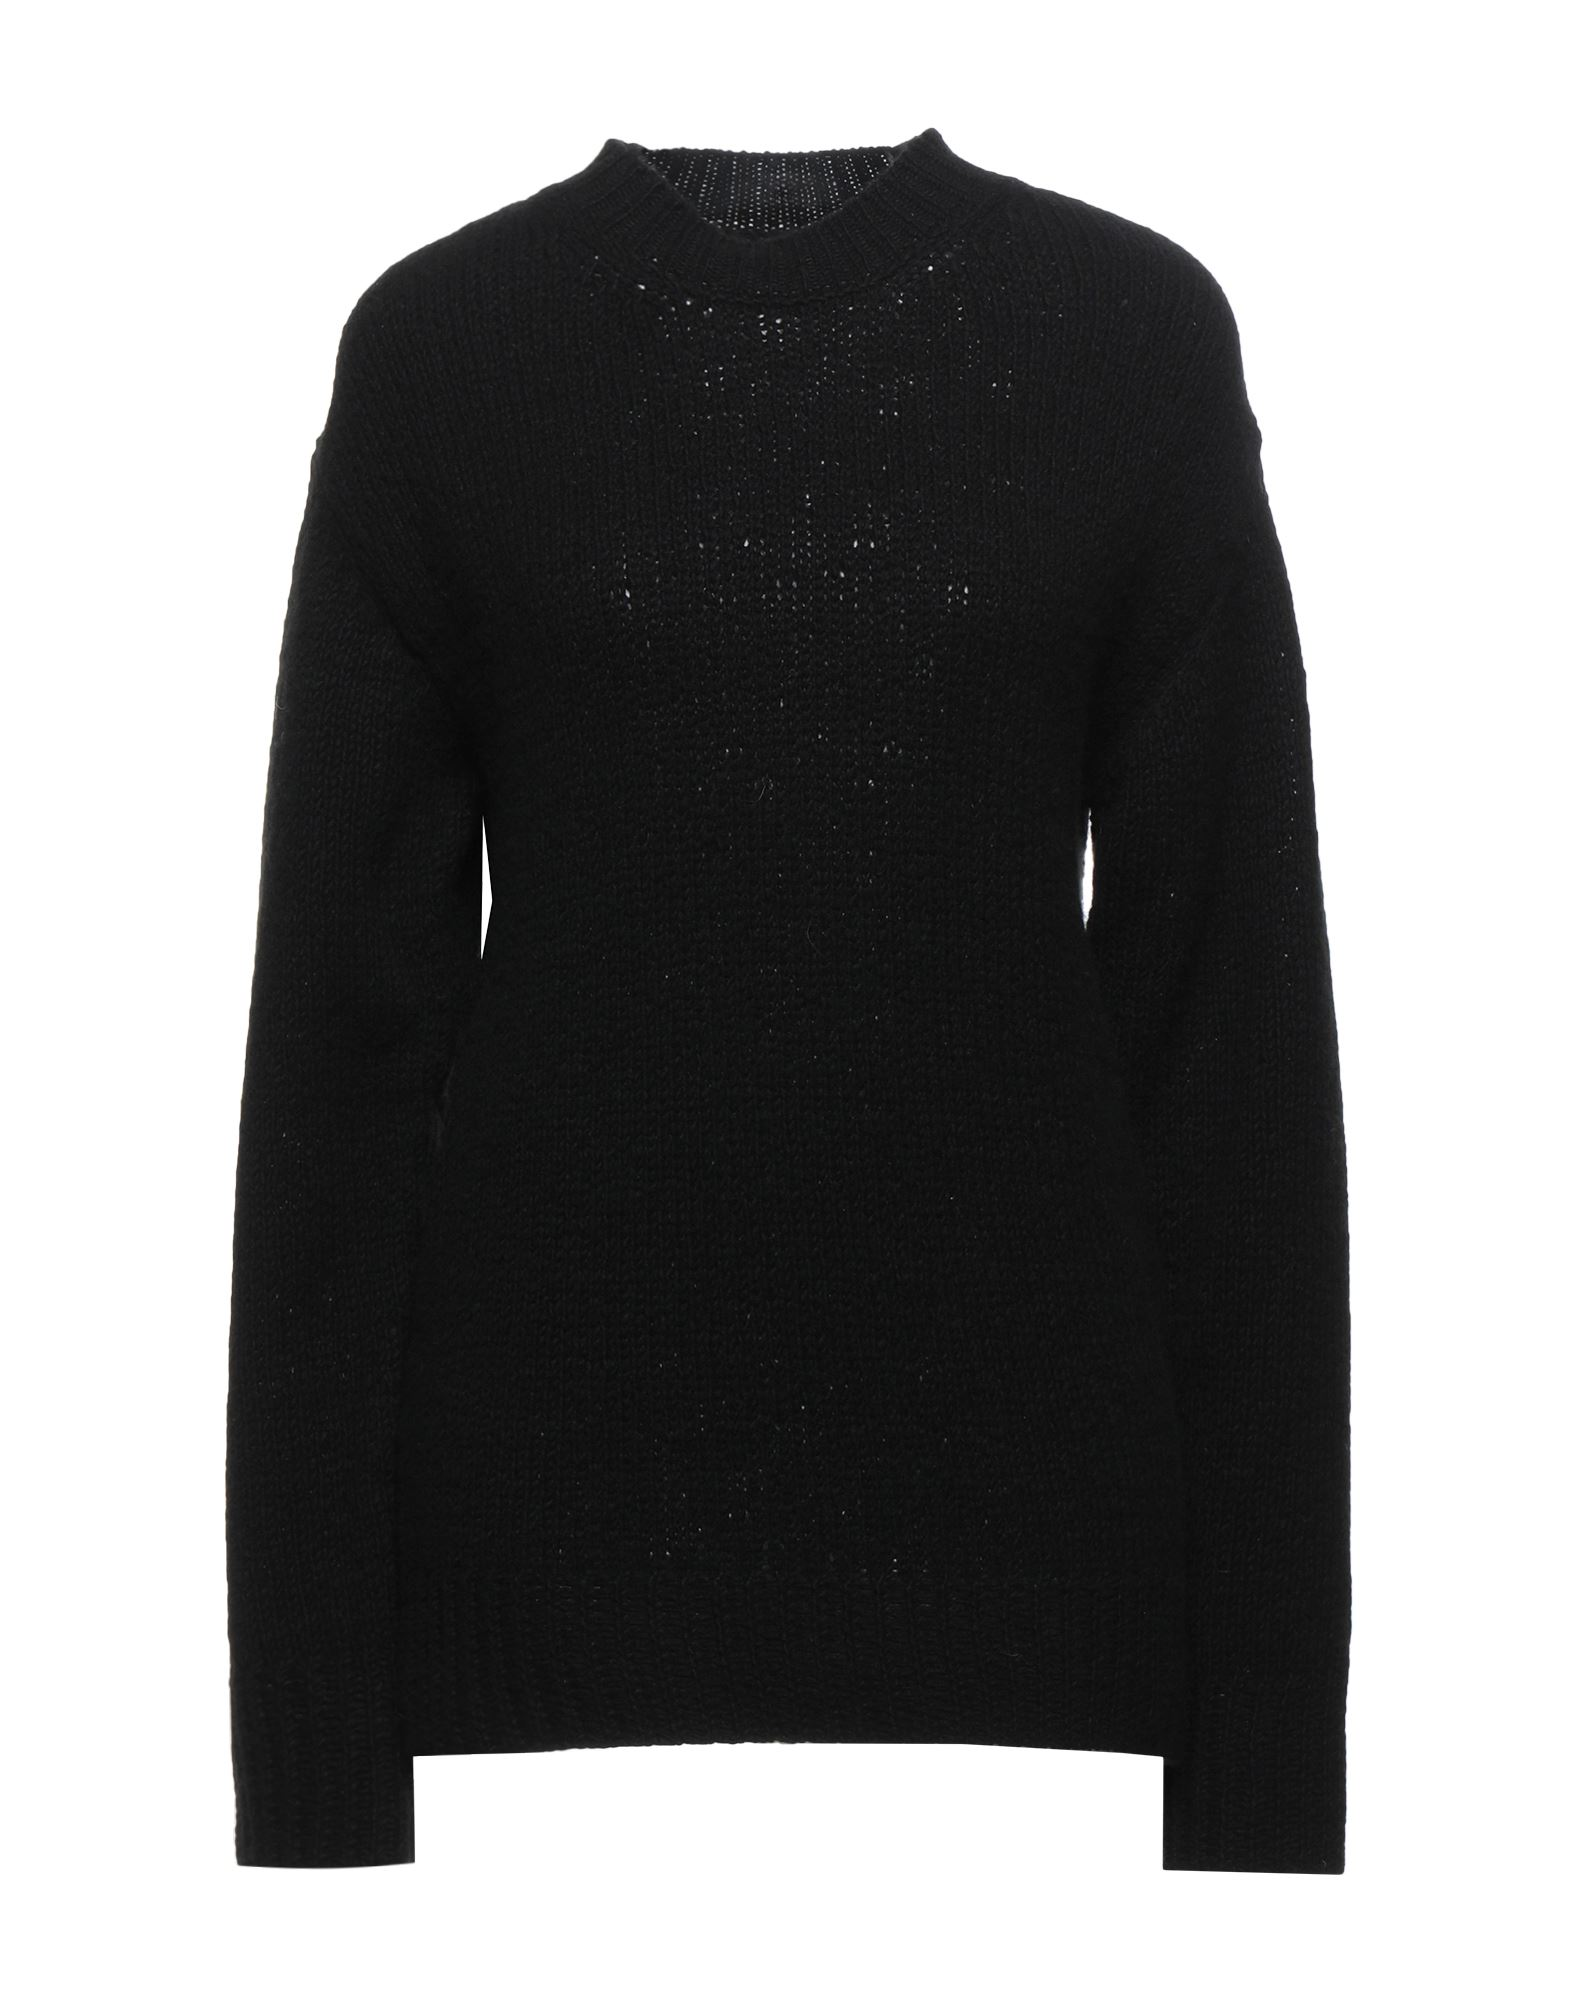 MARC JACOBS Sweaters - Item 14117843